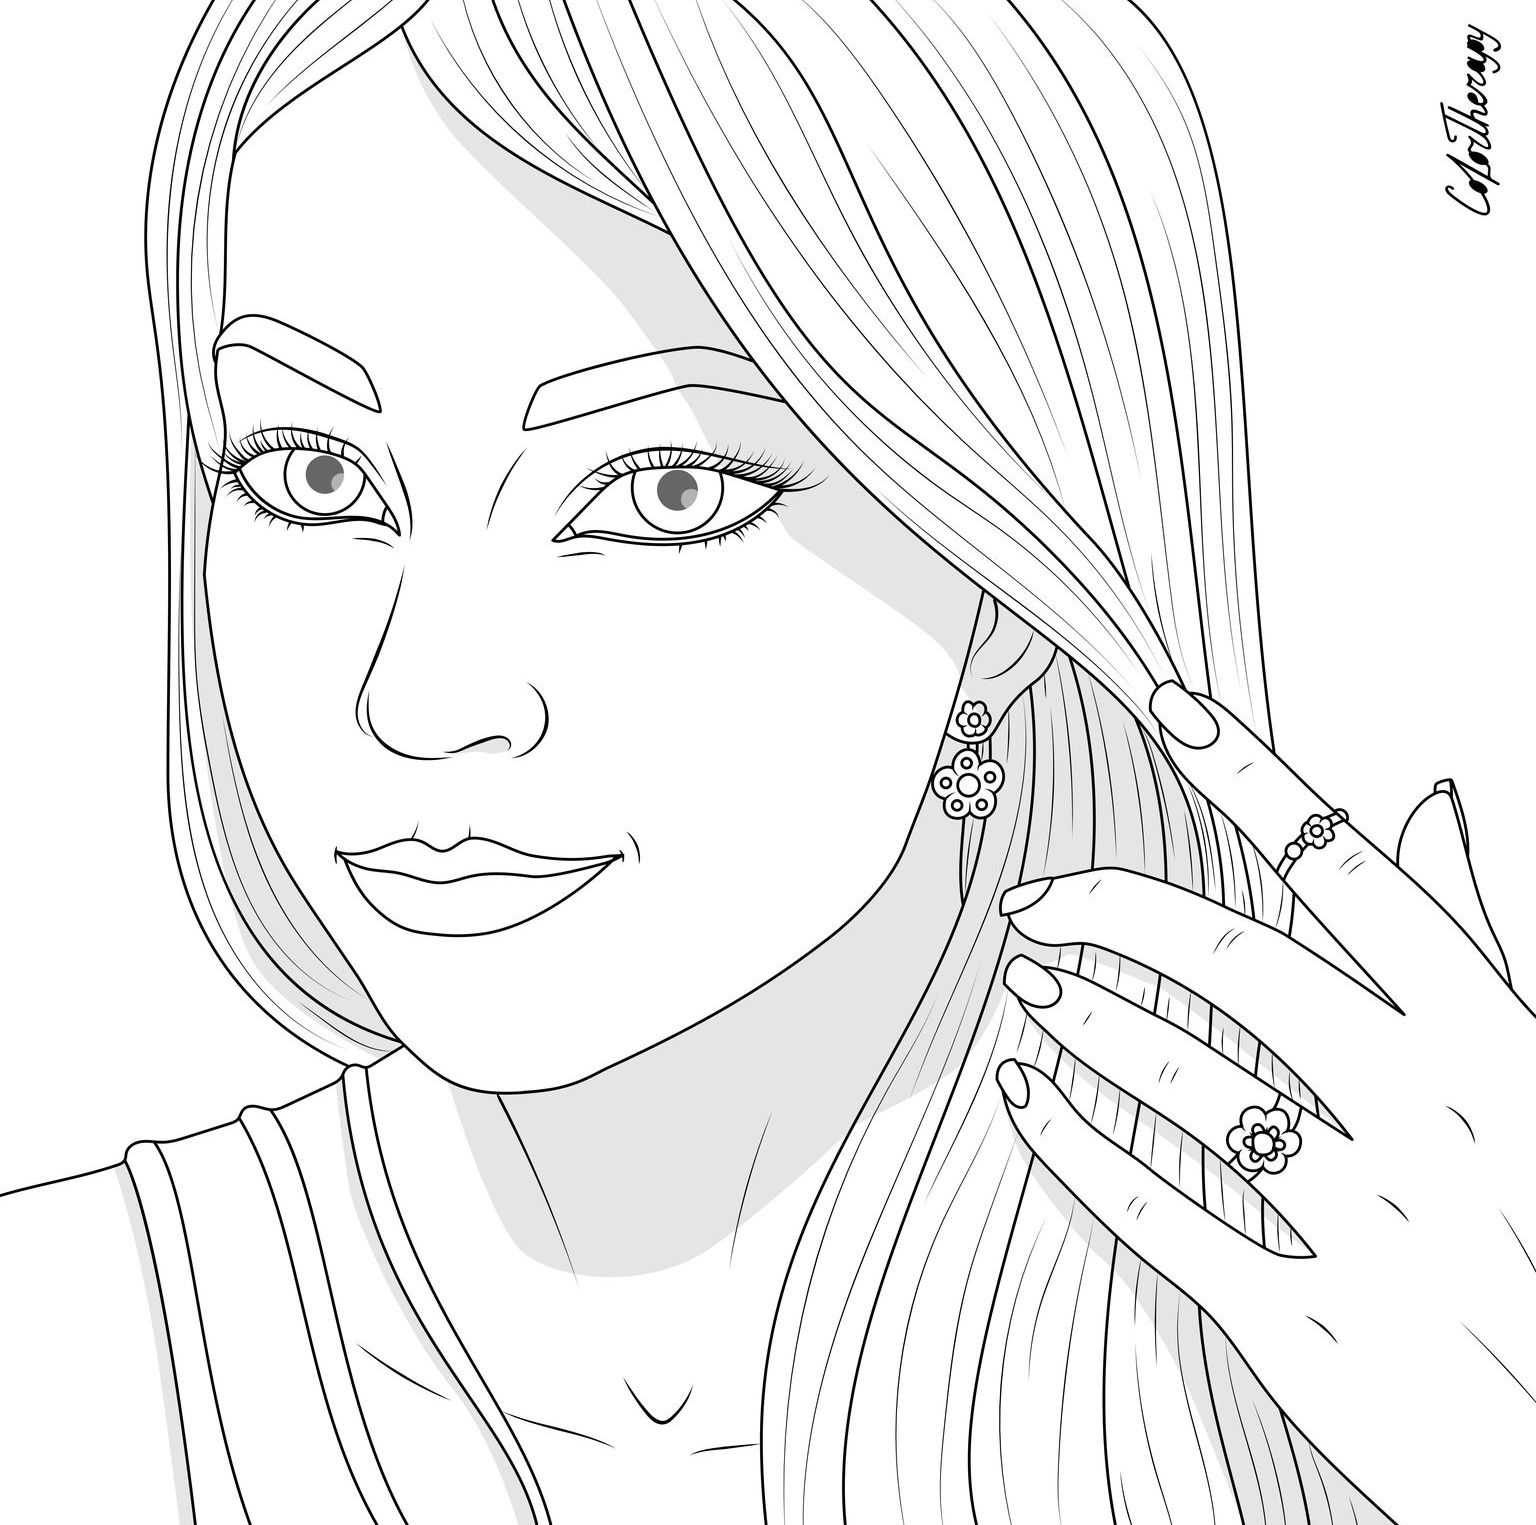 Totally Free Coloring Pages To Unwind While We Re On Social Distancing With Color Therapy App Color Therapy People Coloring Pages Coloring Pages